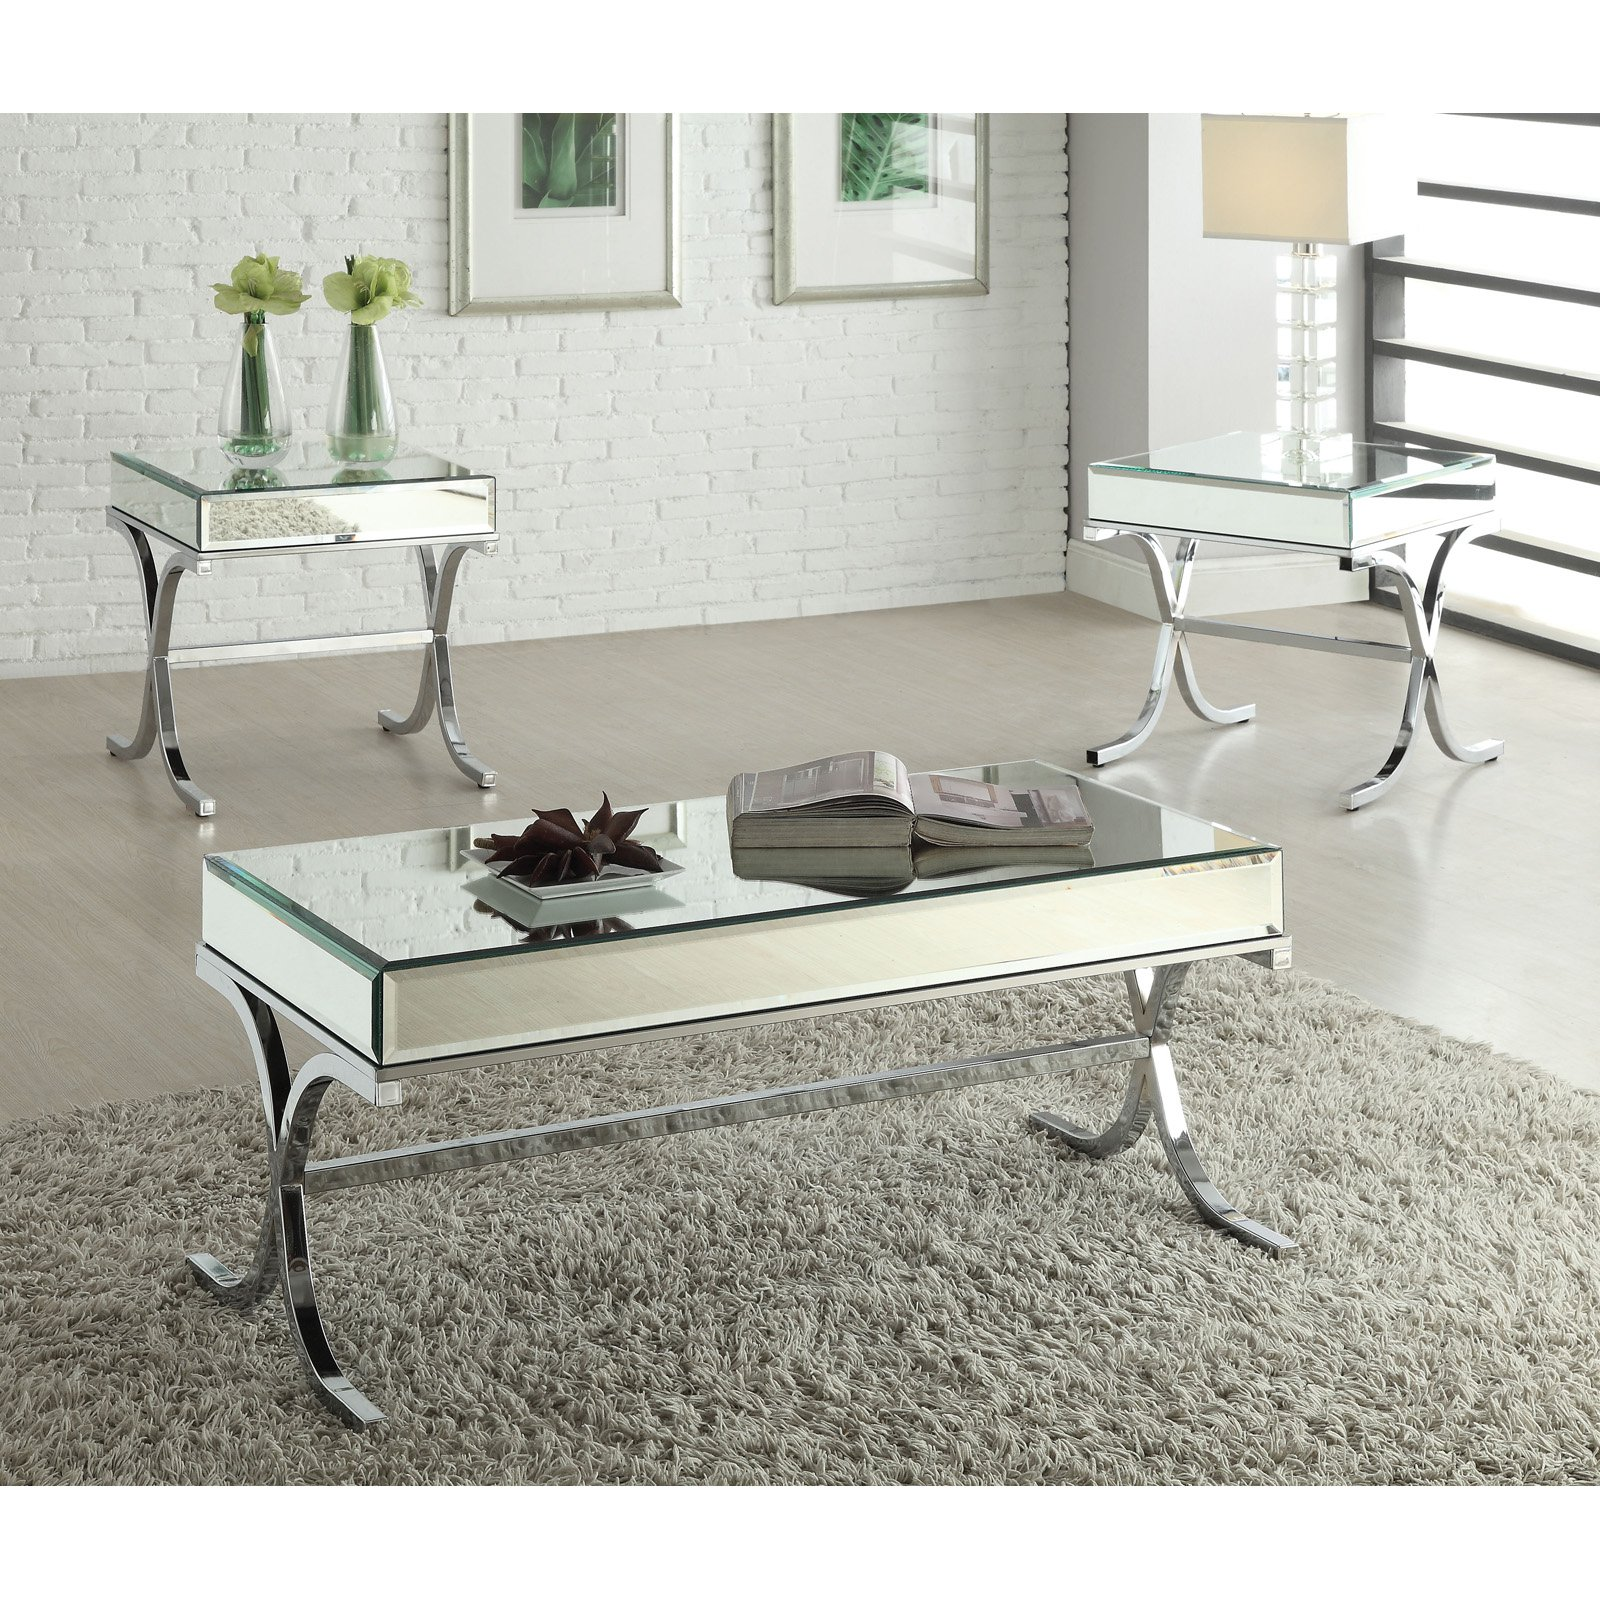 Chrome Chest Coffee Table: Acme Furniture Yuri Mirrored Top And Chrome Coffee Table